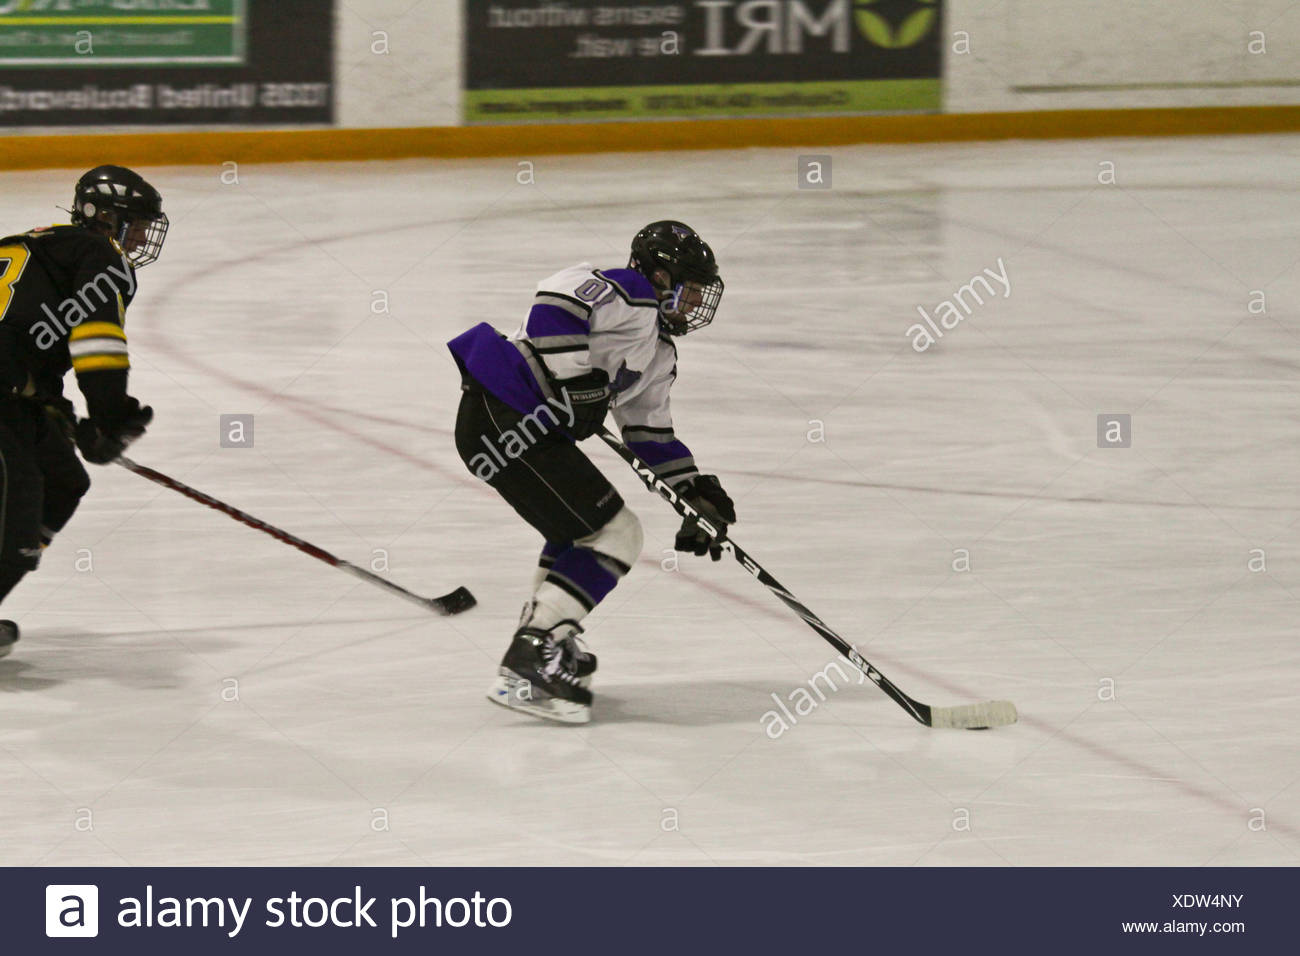 Breakaway - player racing to the net at a local minor league hockey game - Stock Image